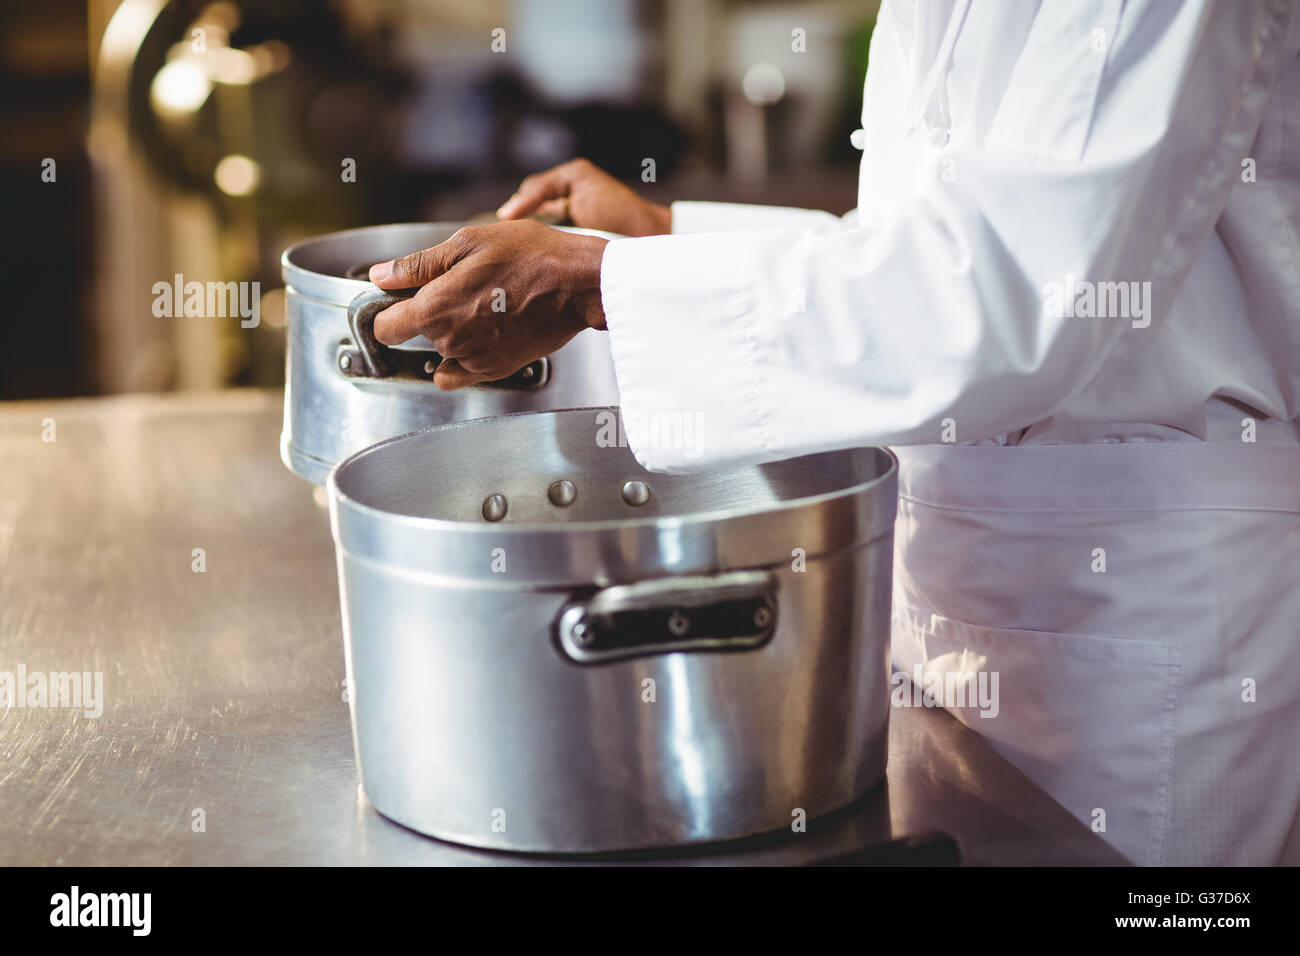 Mid section of chef holding cooking pot - Stock Image